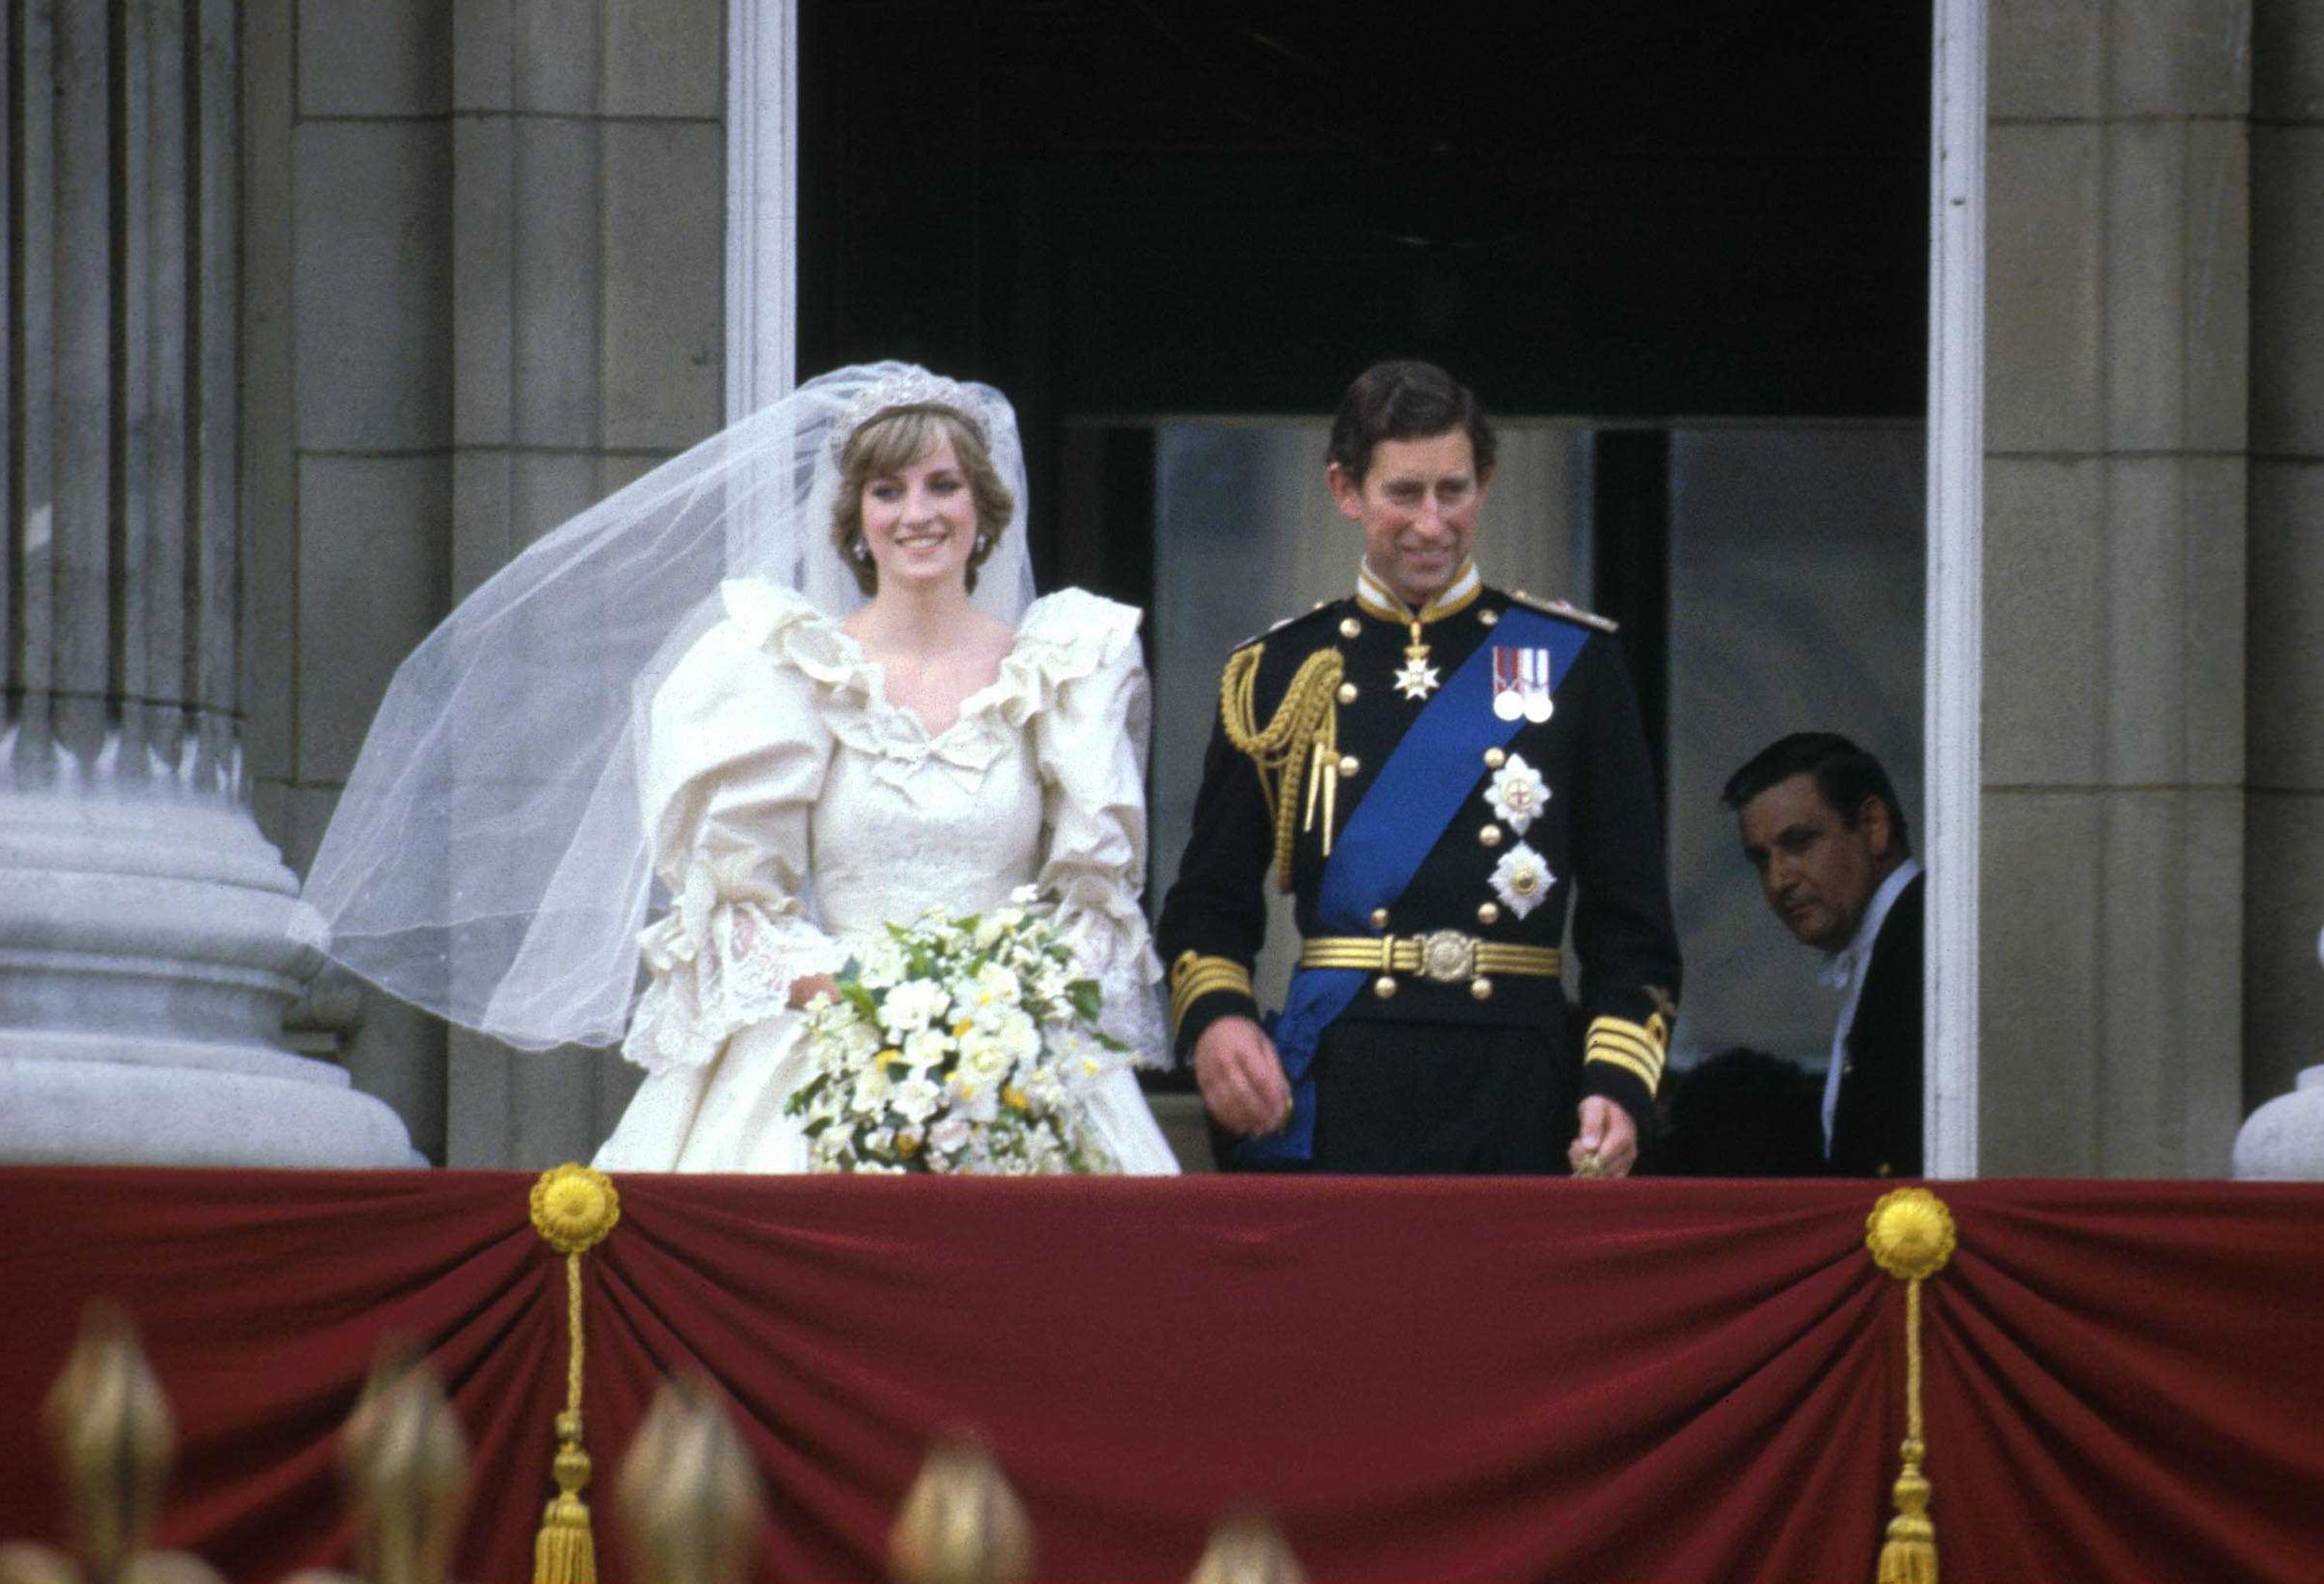 Princess Diana and Prince Charles stand on the balcony of Buckingham Palace after their wedding ceremony at St. Paul's Cathedral, London, England, July 29, 1981 | Photo:Express Newspapers/Getty Images